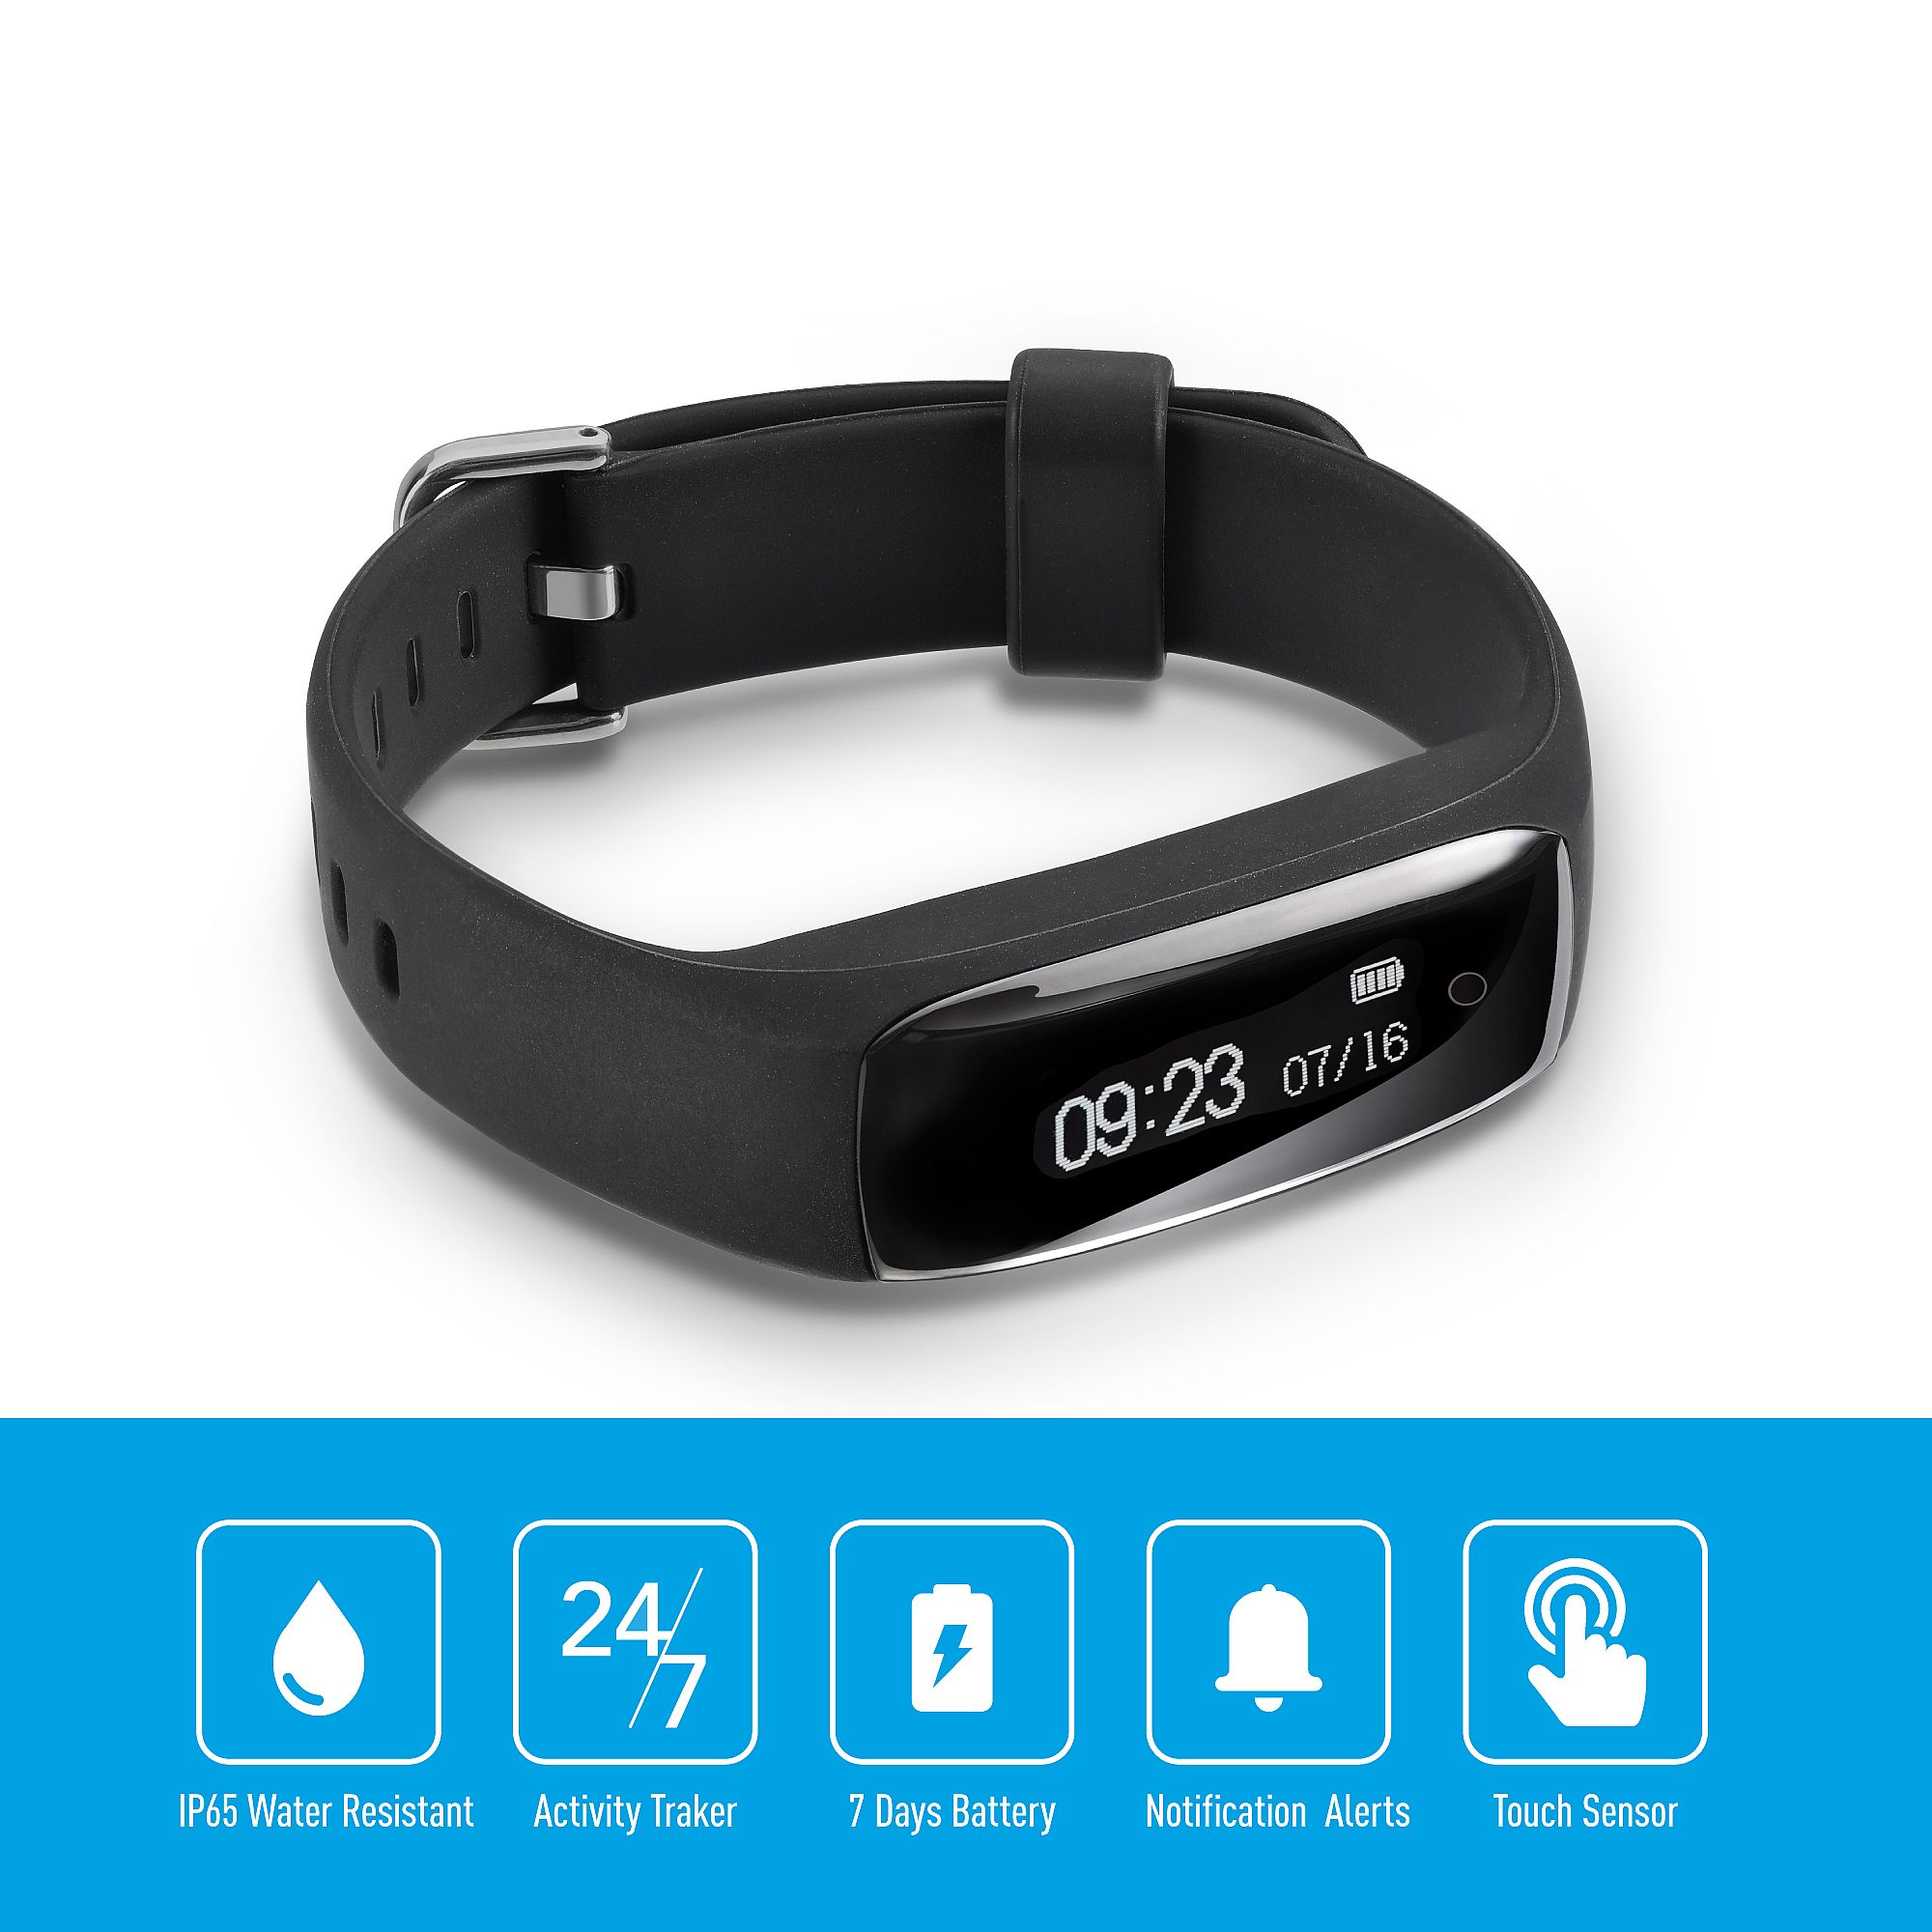 Fitness Bands Compatible With Iphone: Jarv RunFit Water-Resistant Fitness Tracker Activity Band